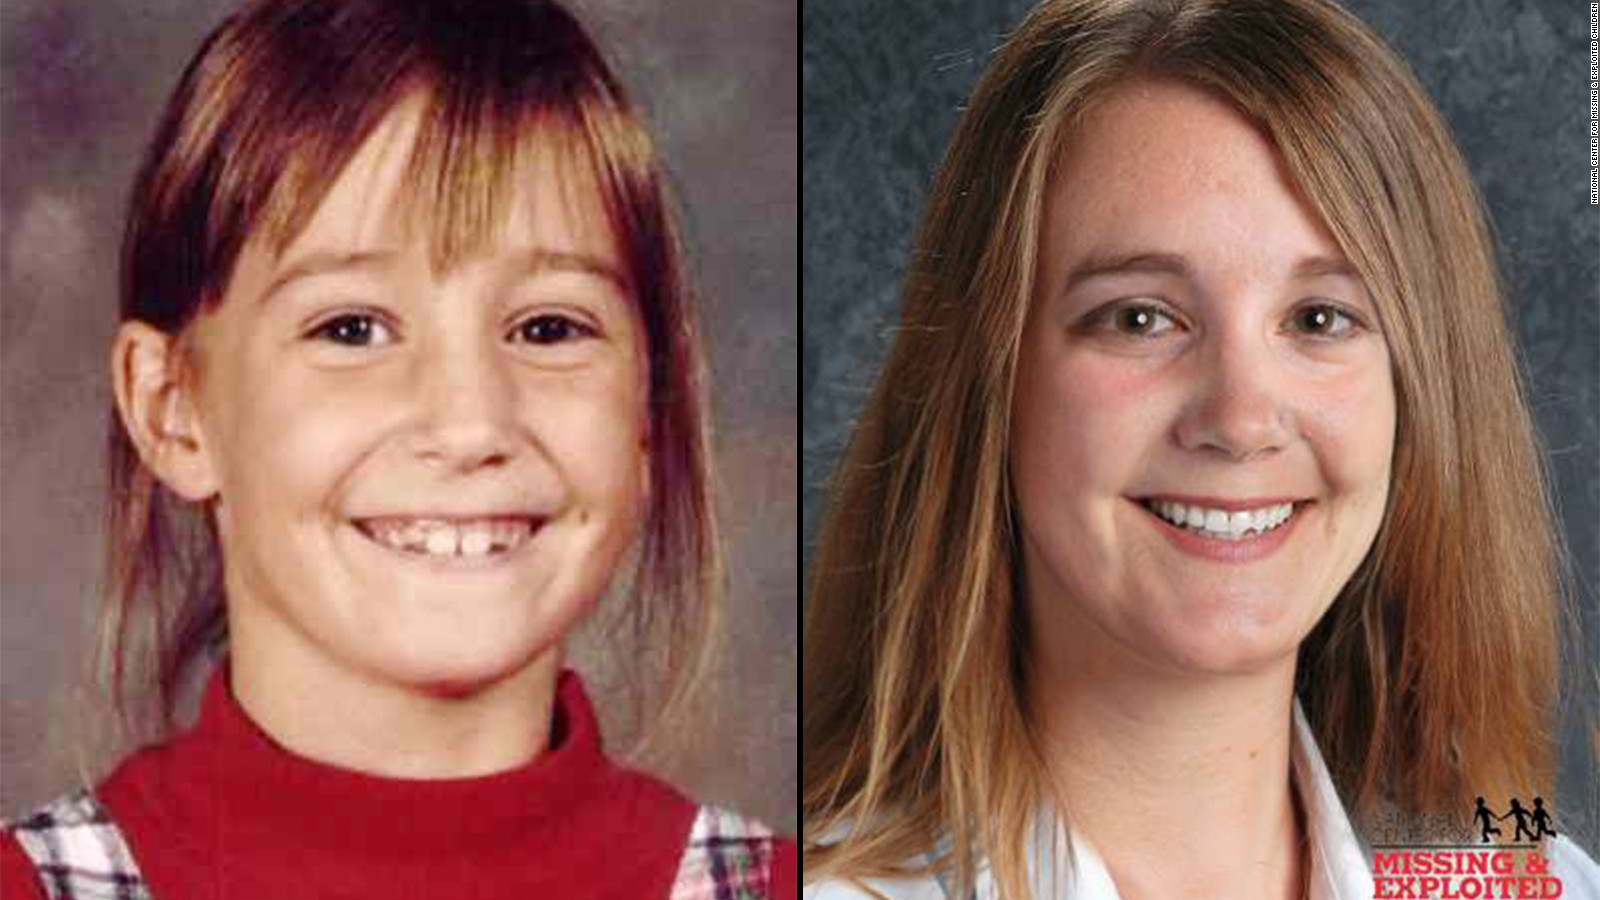 New evidence leads to arrest in child abduction cold case